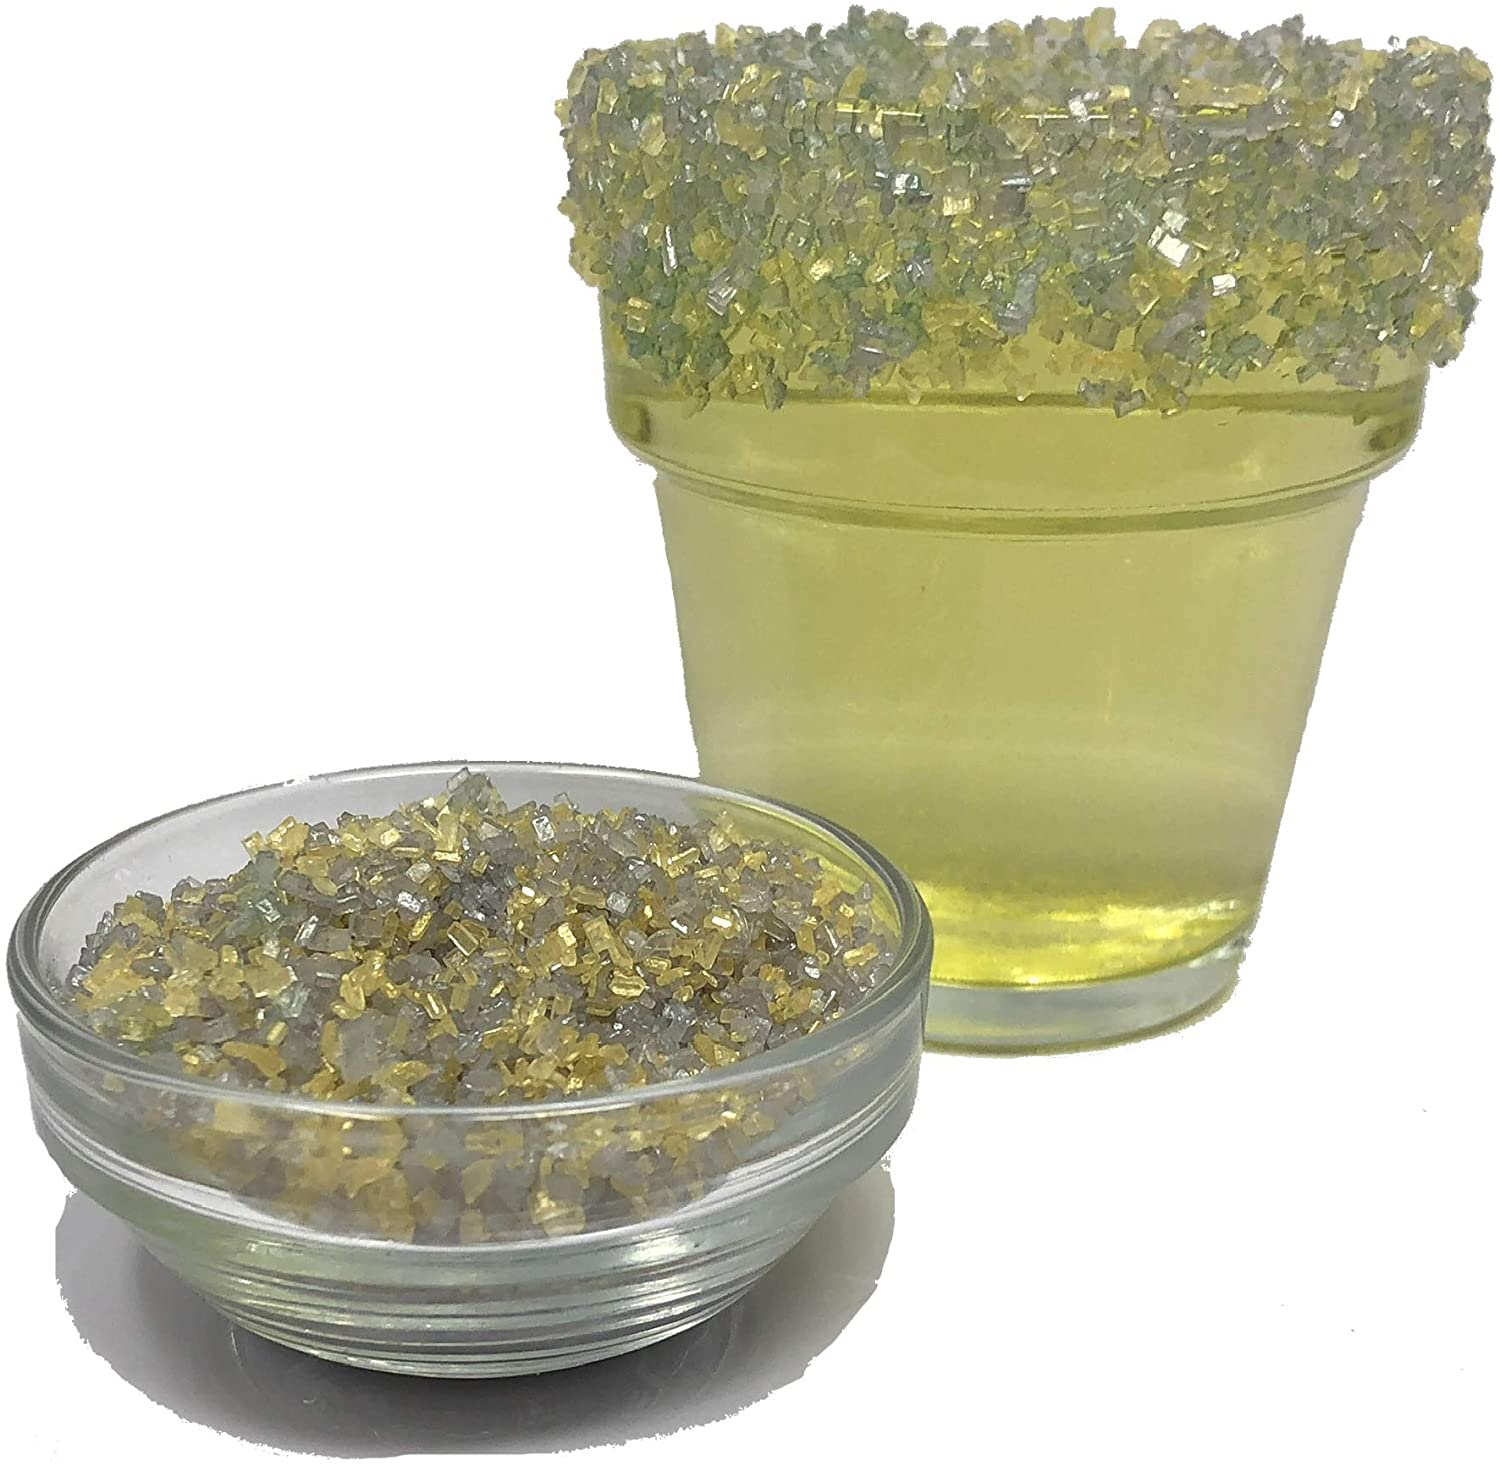 All Natural Kosher Gold and Silver Cocktail Rimmer Snowy River Jewels Cocktail Sugar 1lb, Jewels